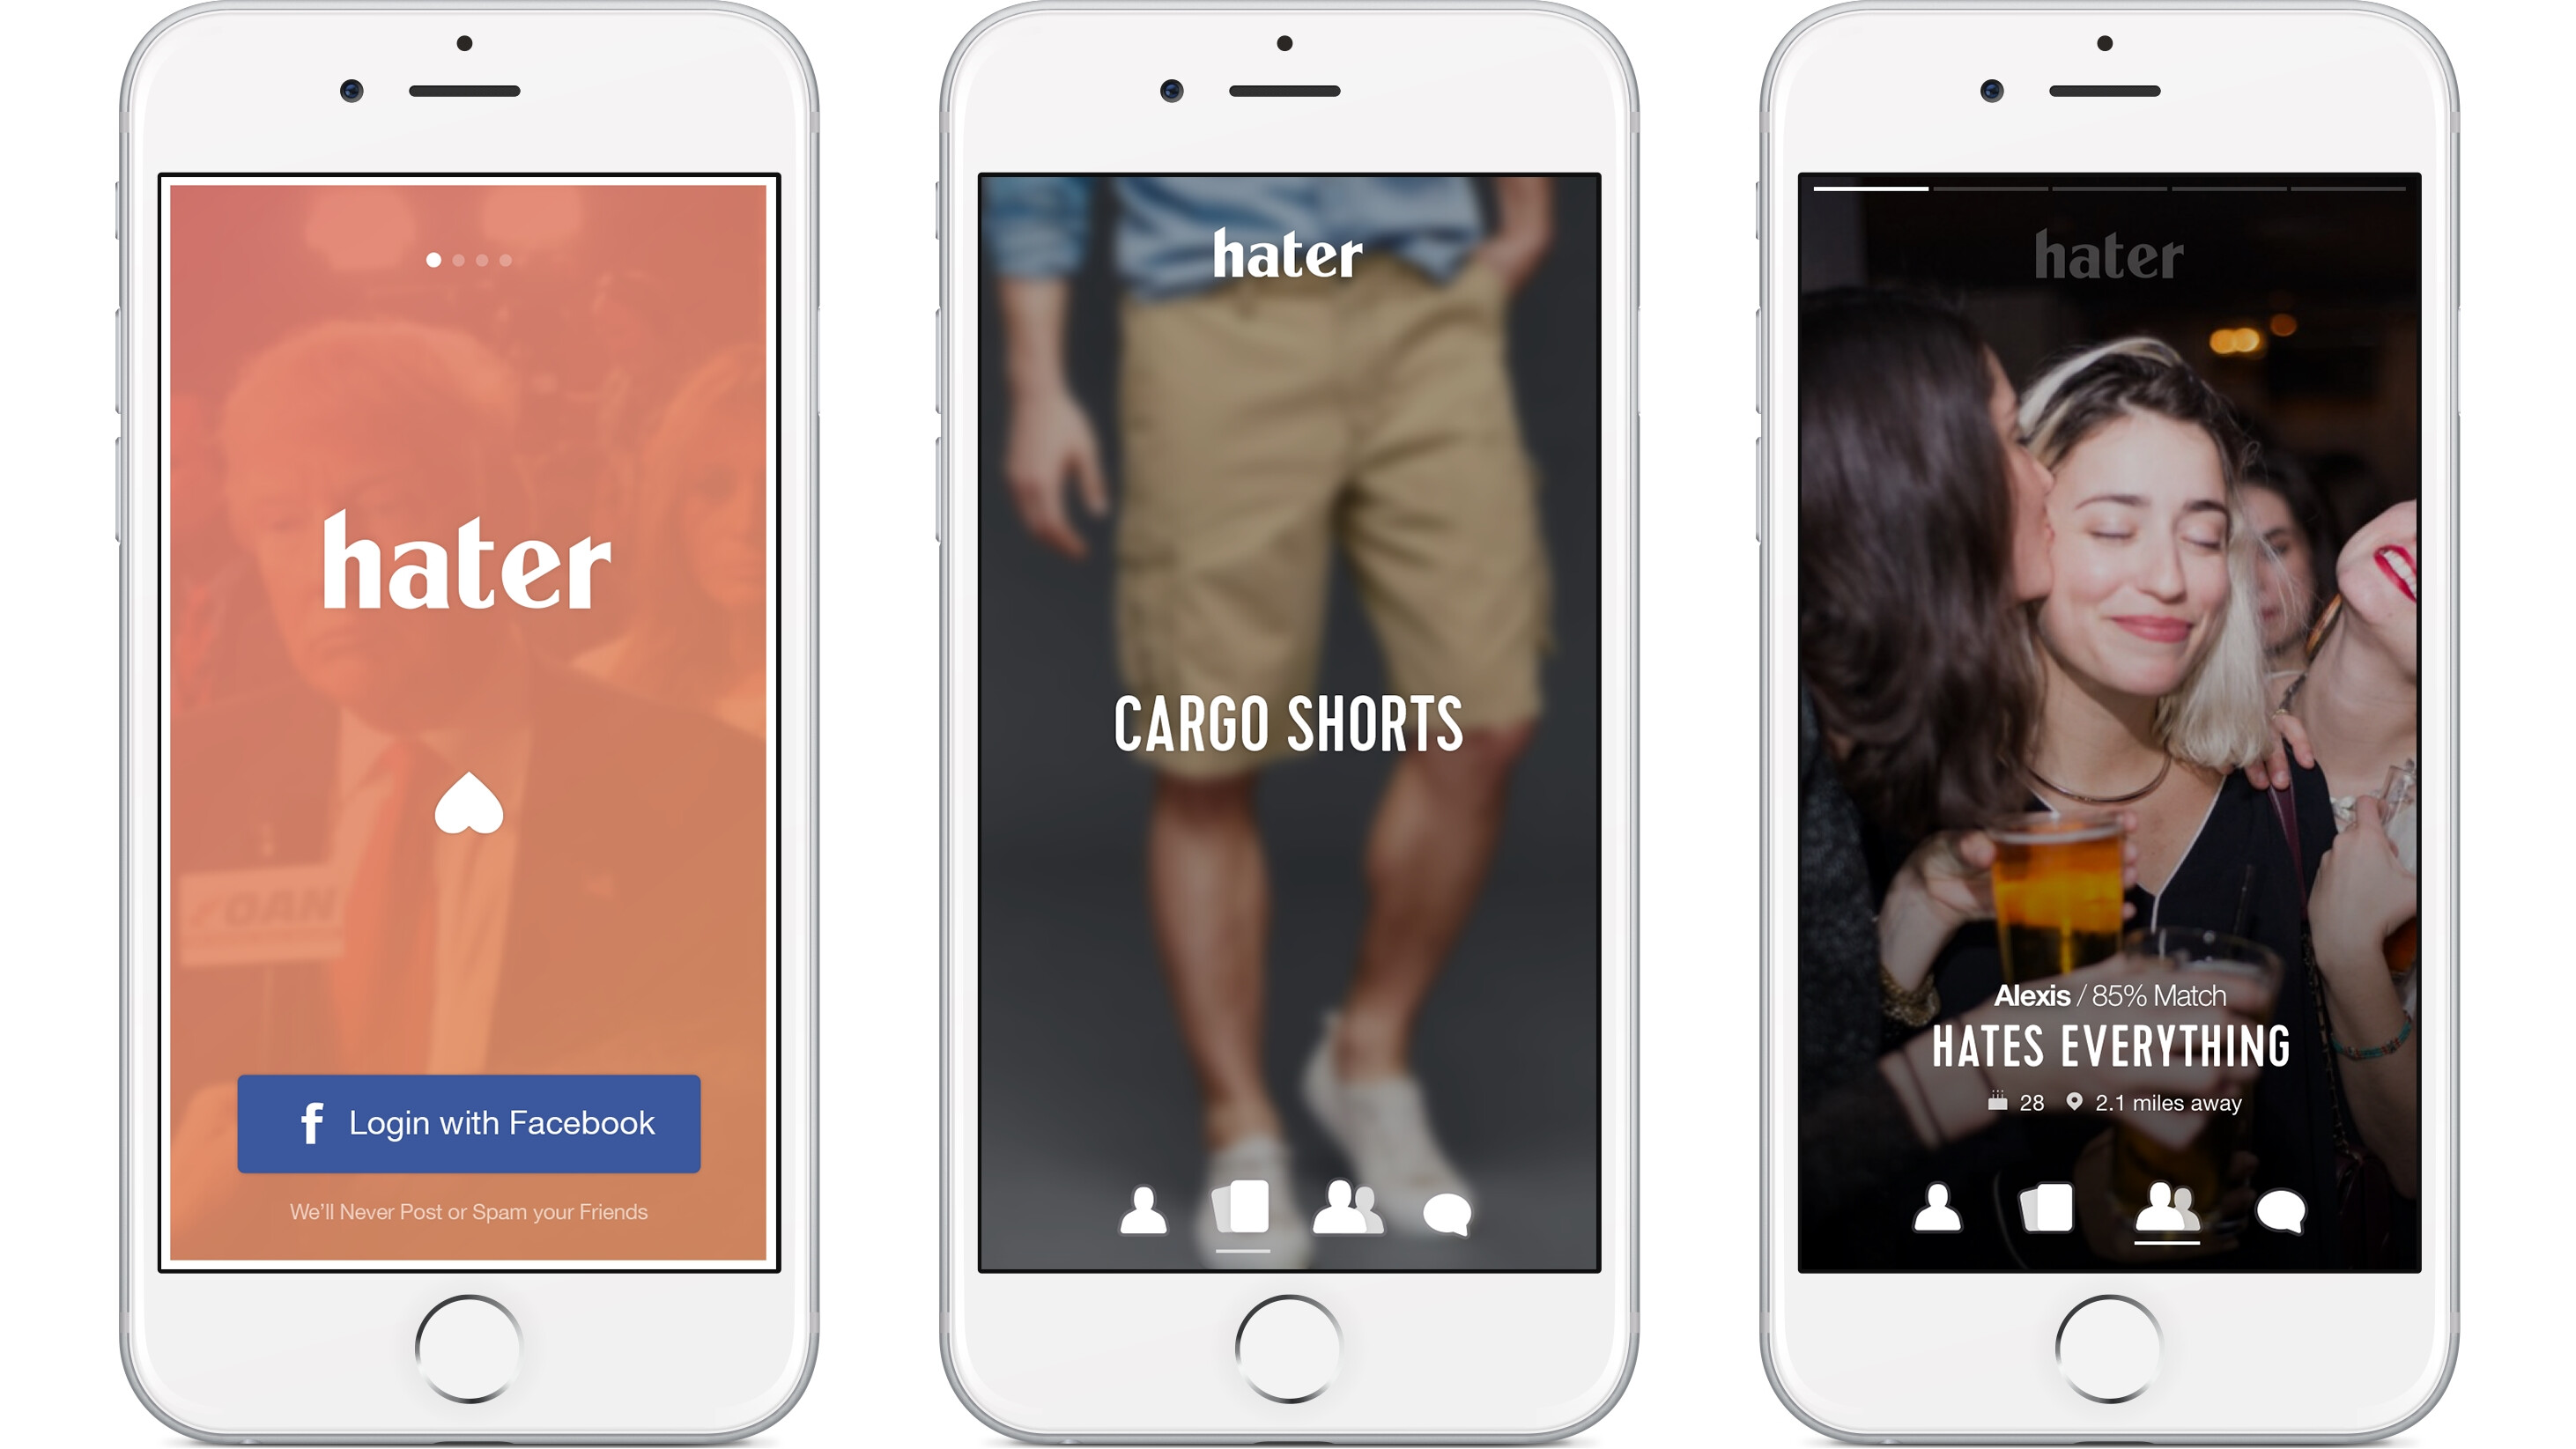 Download Hater in the App Store now (coming to Android in the spring).